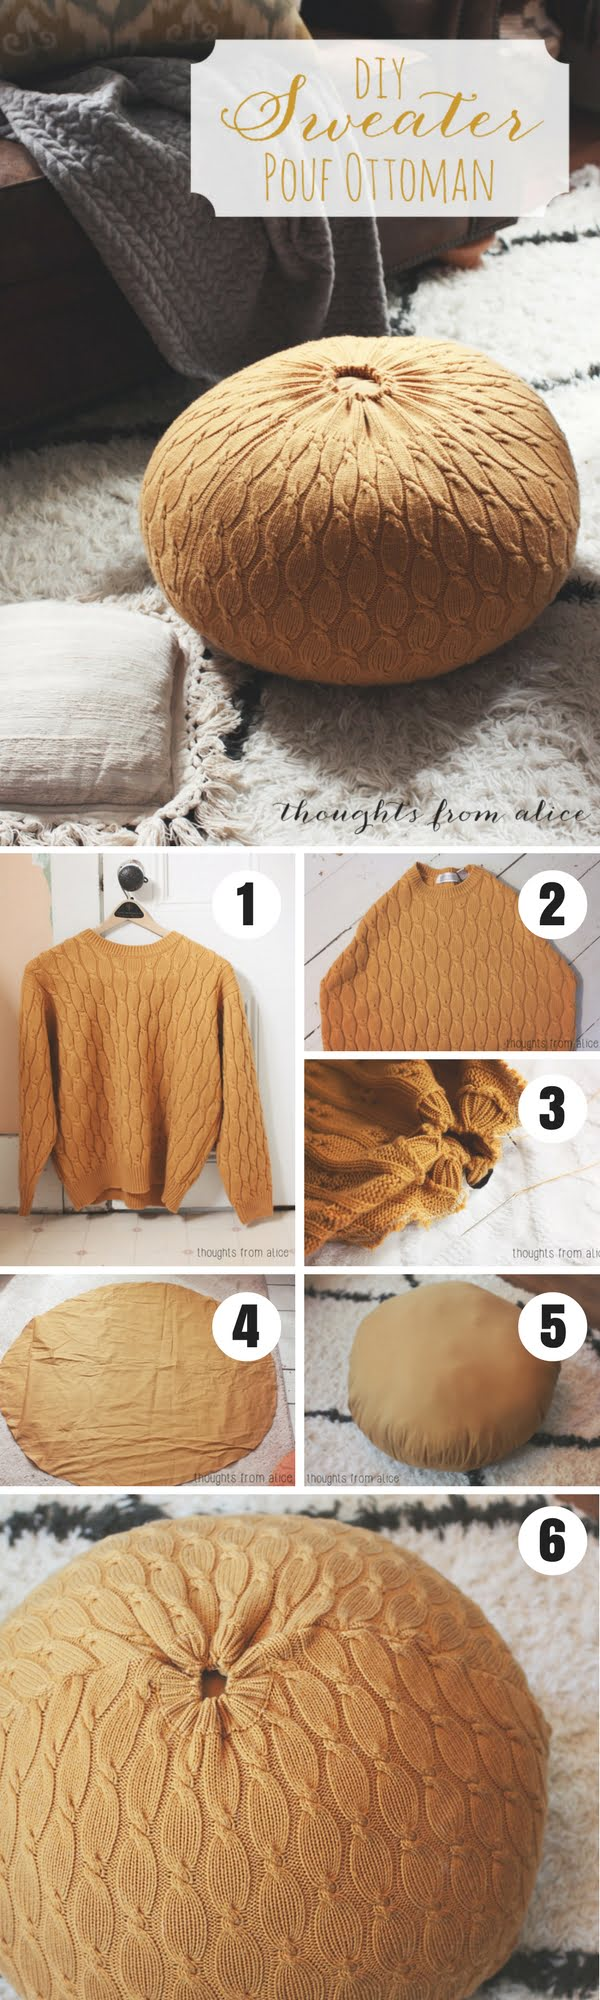 Check out how to turn an old sweater into a DIY pouf